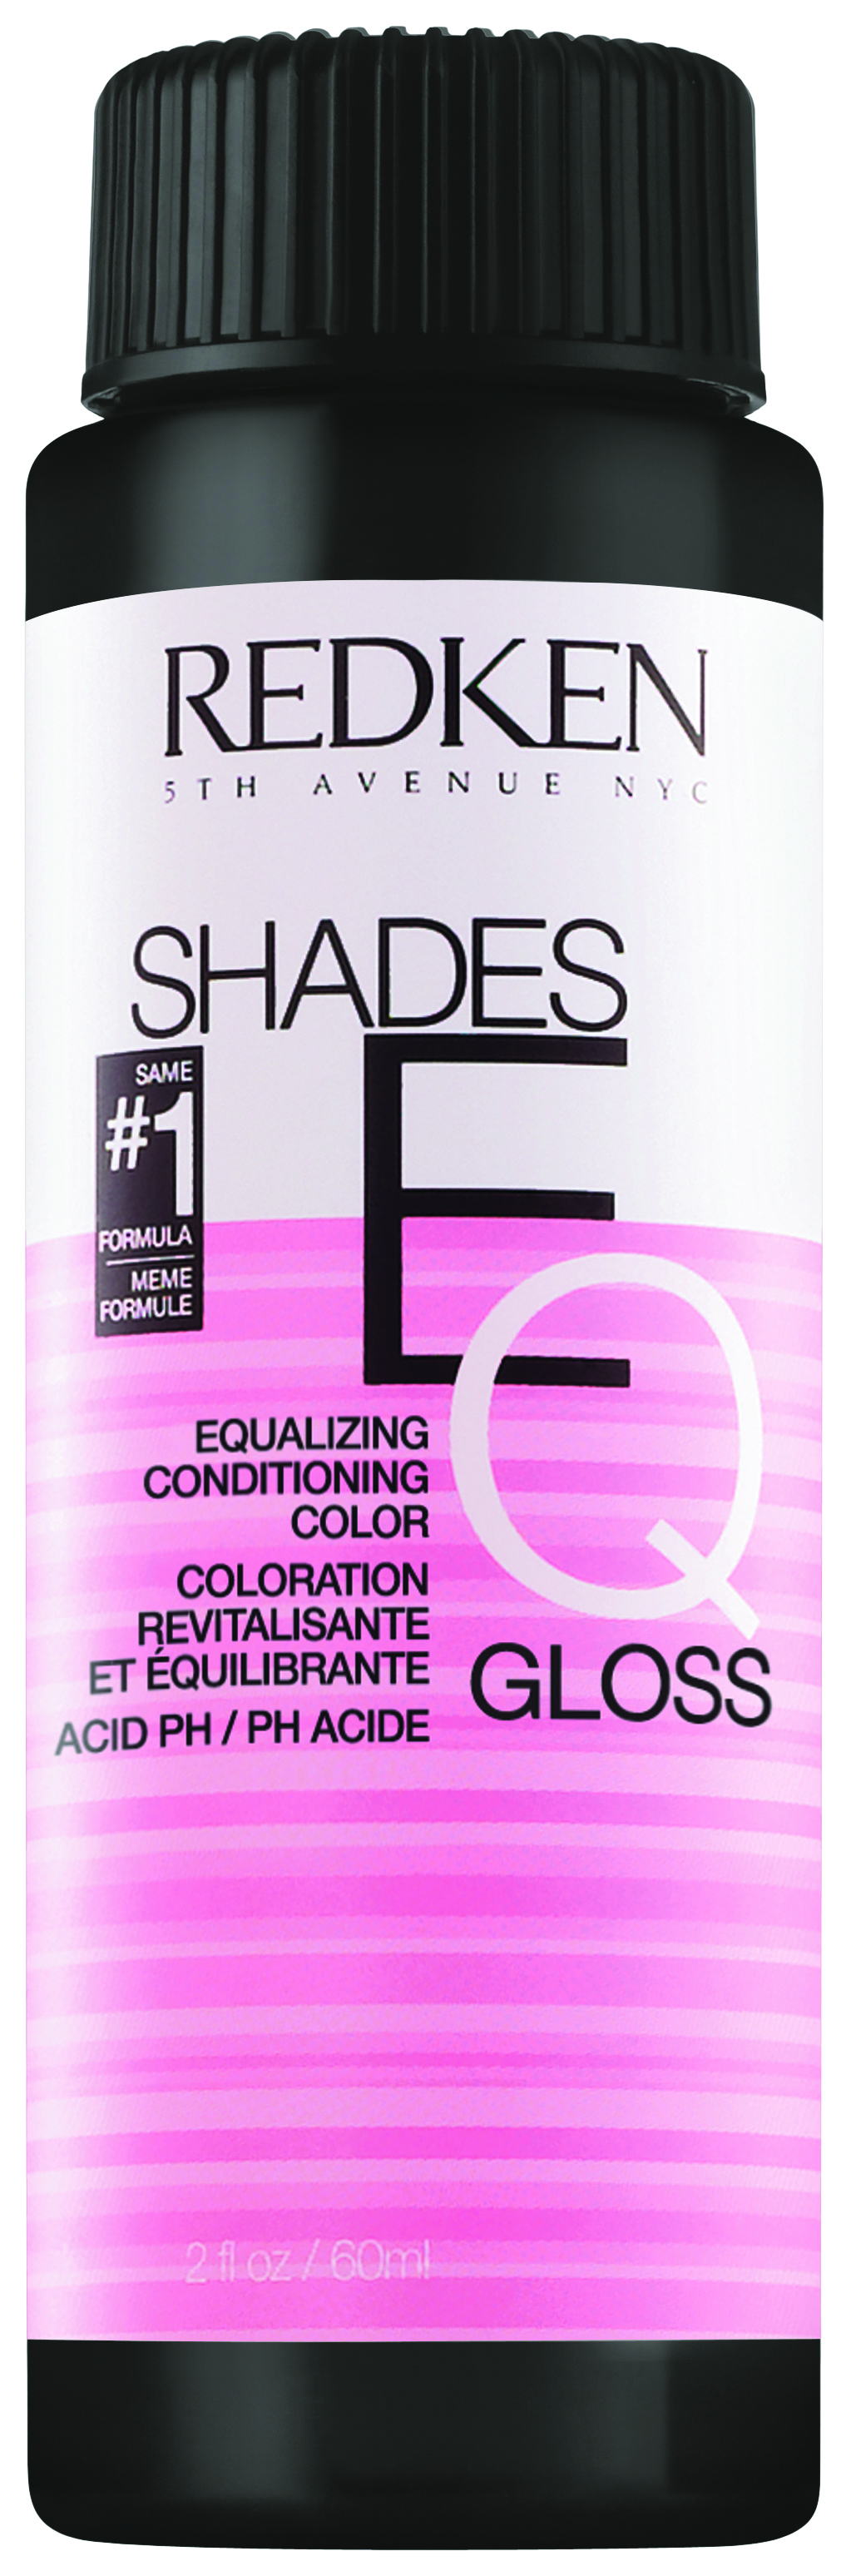 Redken Introduces New Shades EQ Pastel Shades